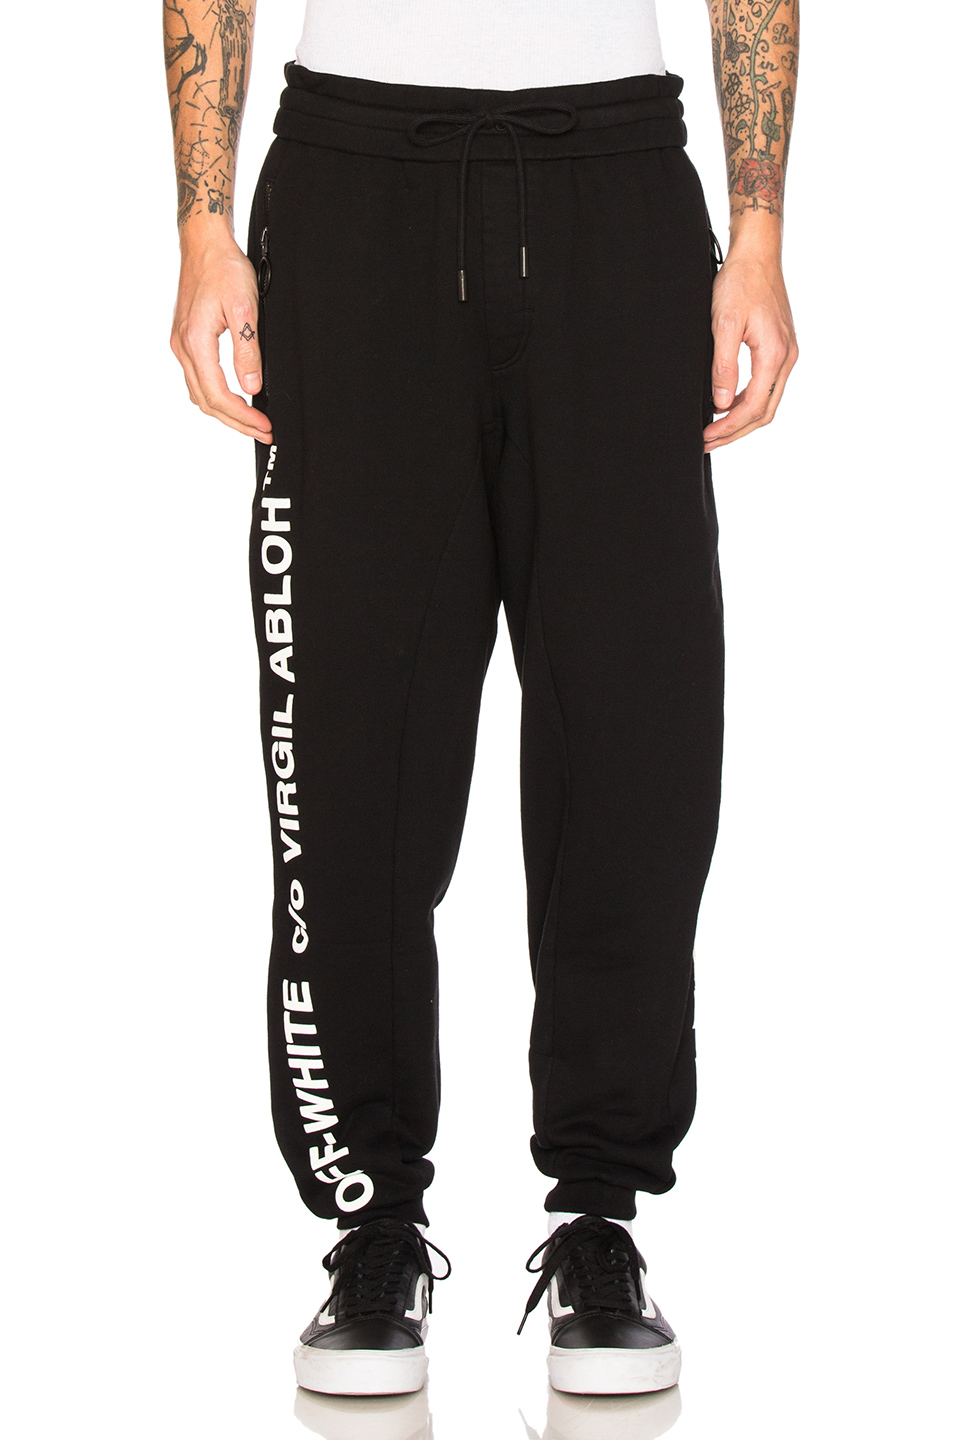 OFF-WHITE Virgil Abloh Pants in Black